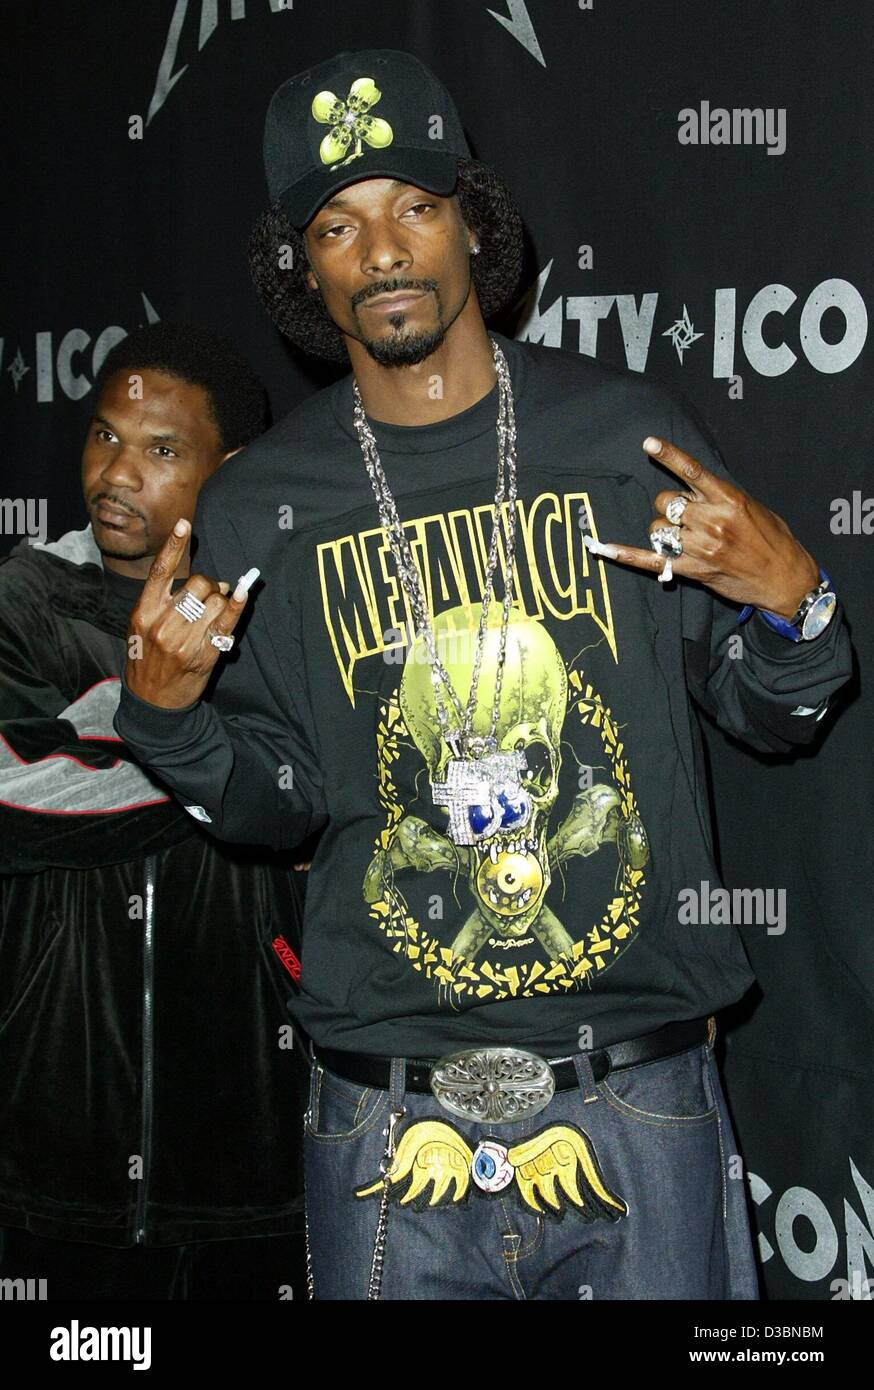 (dpa) - US hip hopper Snoop Doggy Dog gestures during the MTV Icon event in Los Angeles, 3 May 2003. - Stock Image